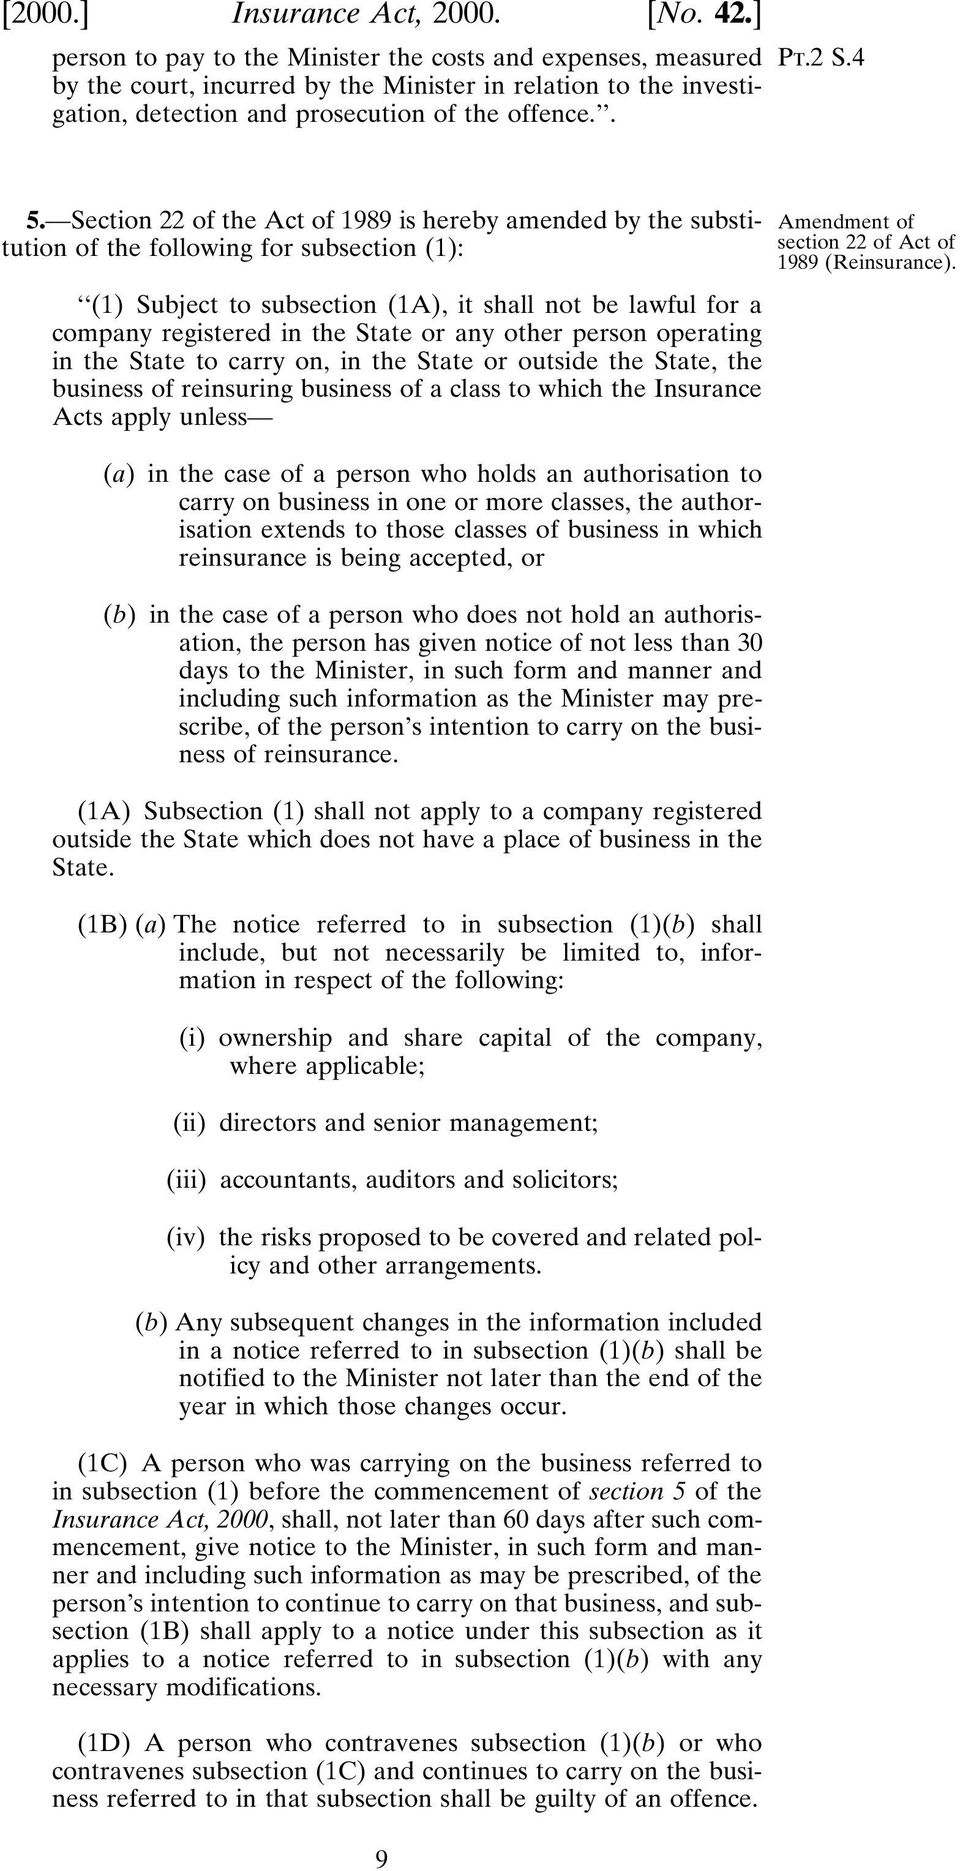 Section 22 of the Act of 1989 is hereby amended by the substitution of the following for subsection (1): (1) Subject to subsection (1A), it shall not be lawful for a company registered in the State